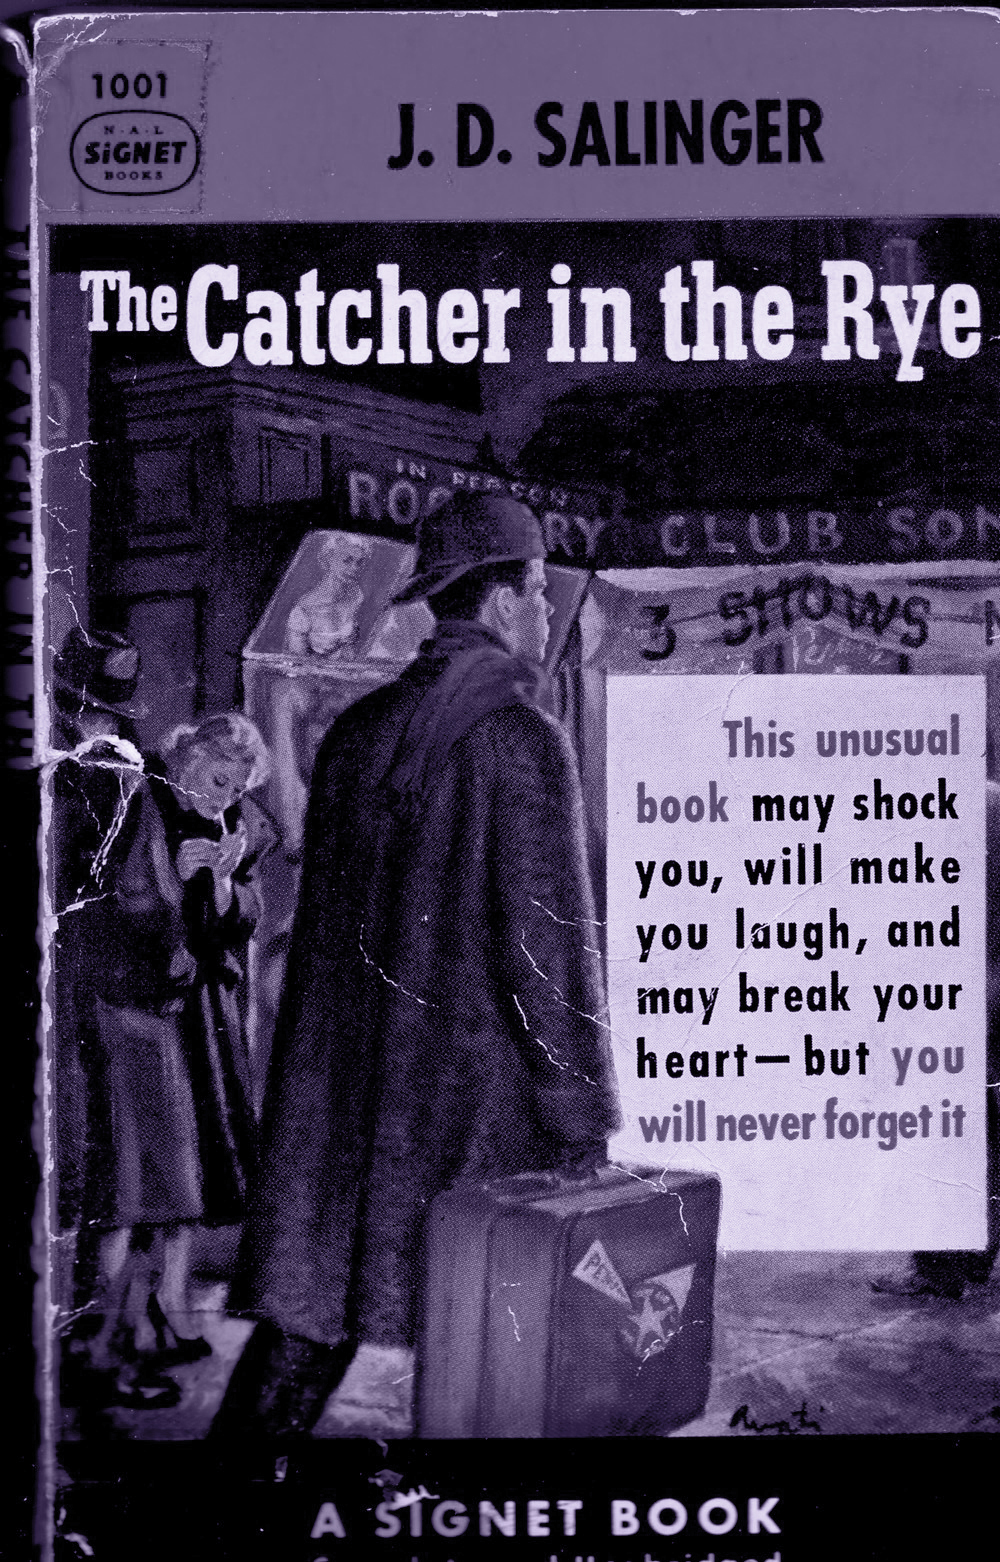 catcher in the rye essay rough The catcher in the rye like any good artist, authors must leave room for interpretation in their work symbolism provides readers with a chance to read between the.